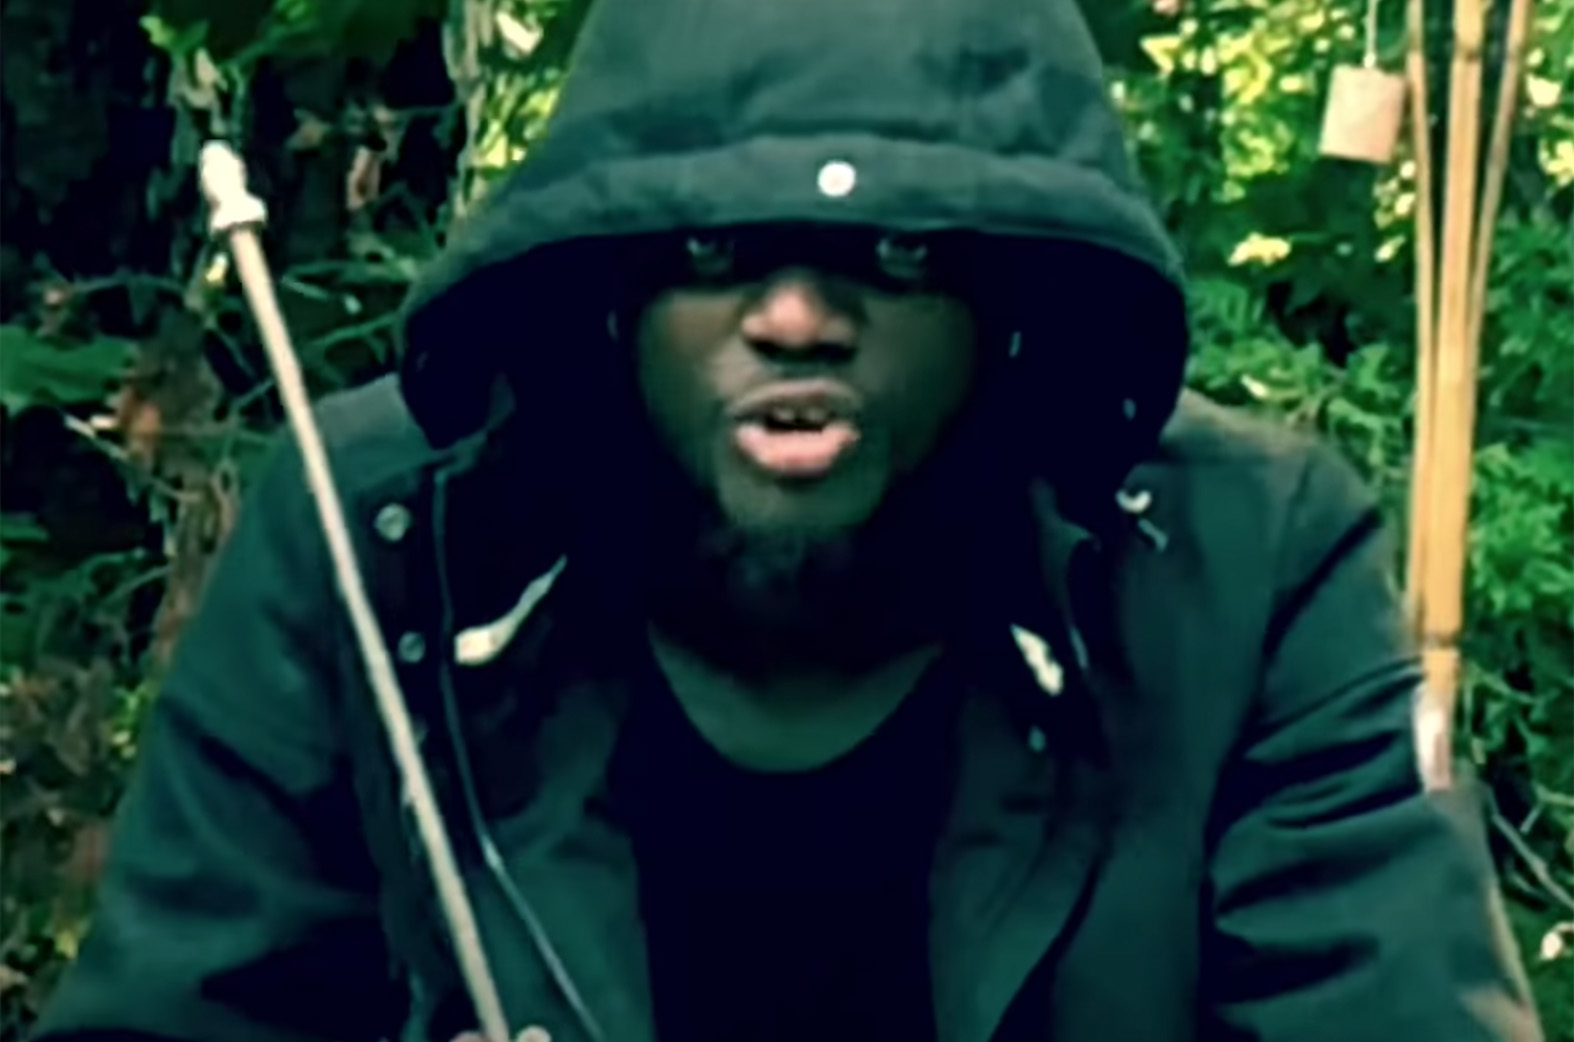 Video: Dear Hater by AsuodenGod (Pope Skinny)